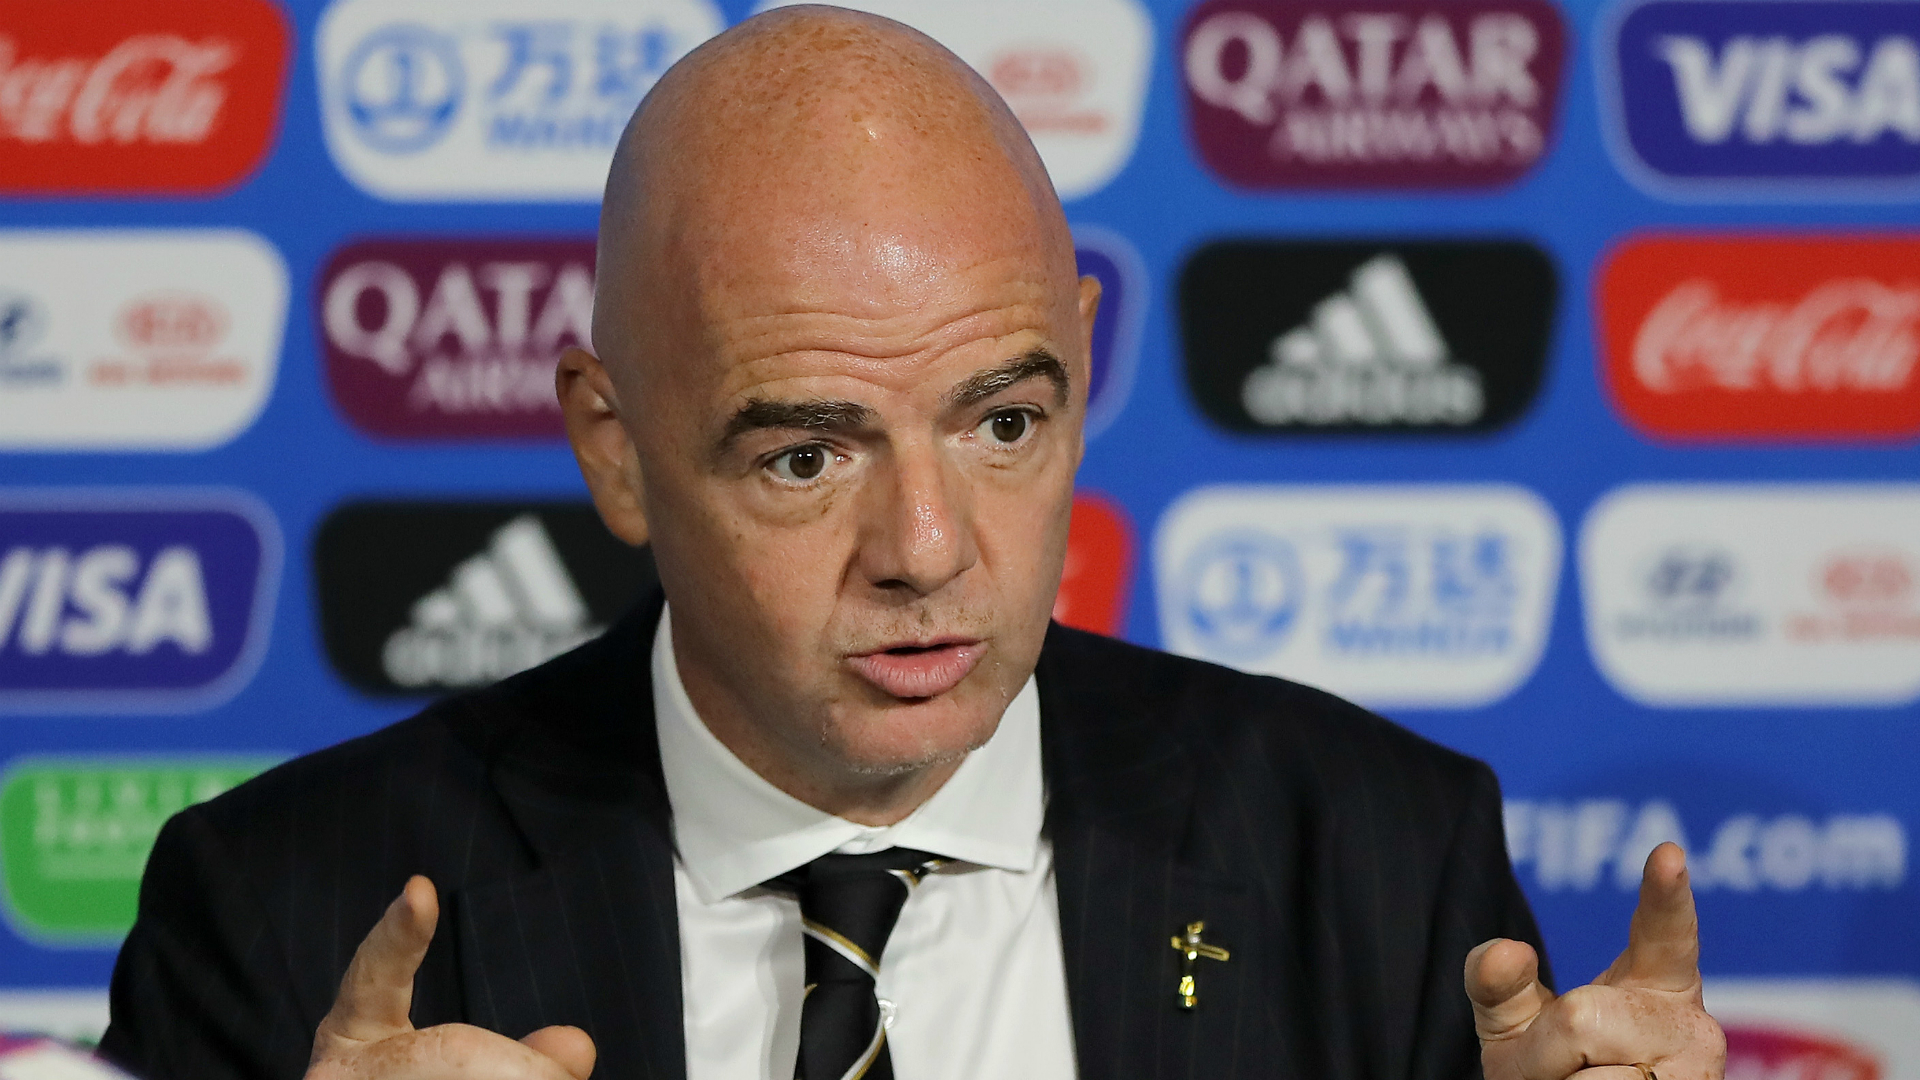 FIFA president Infantino welcomes law changes that improve workers' rights in Qatar